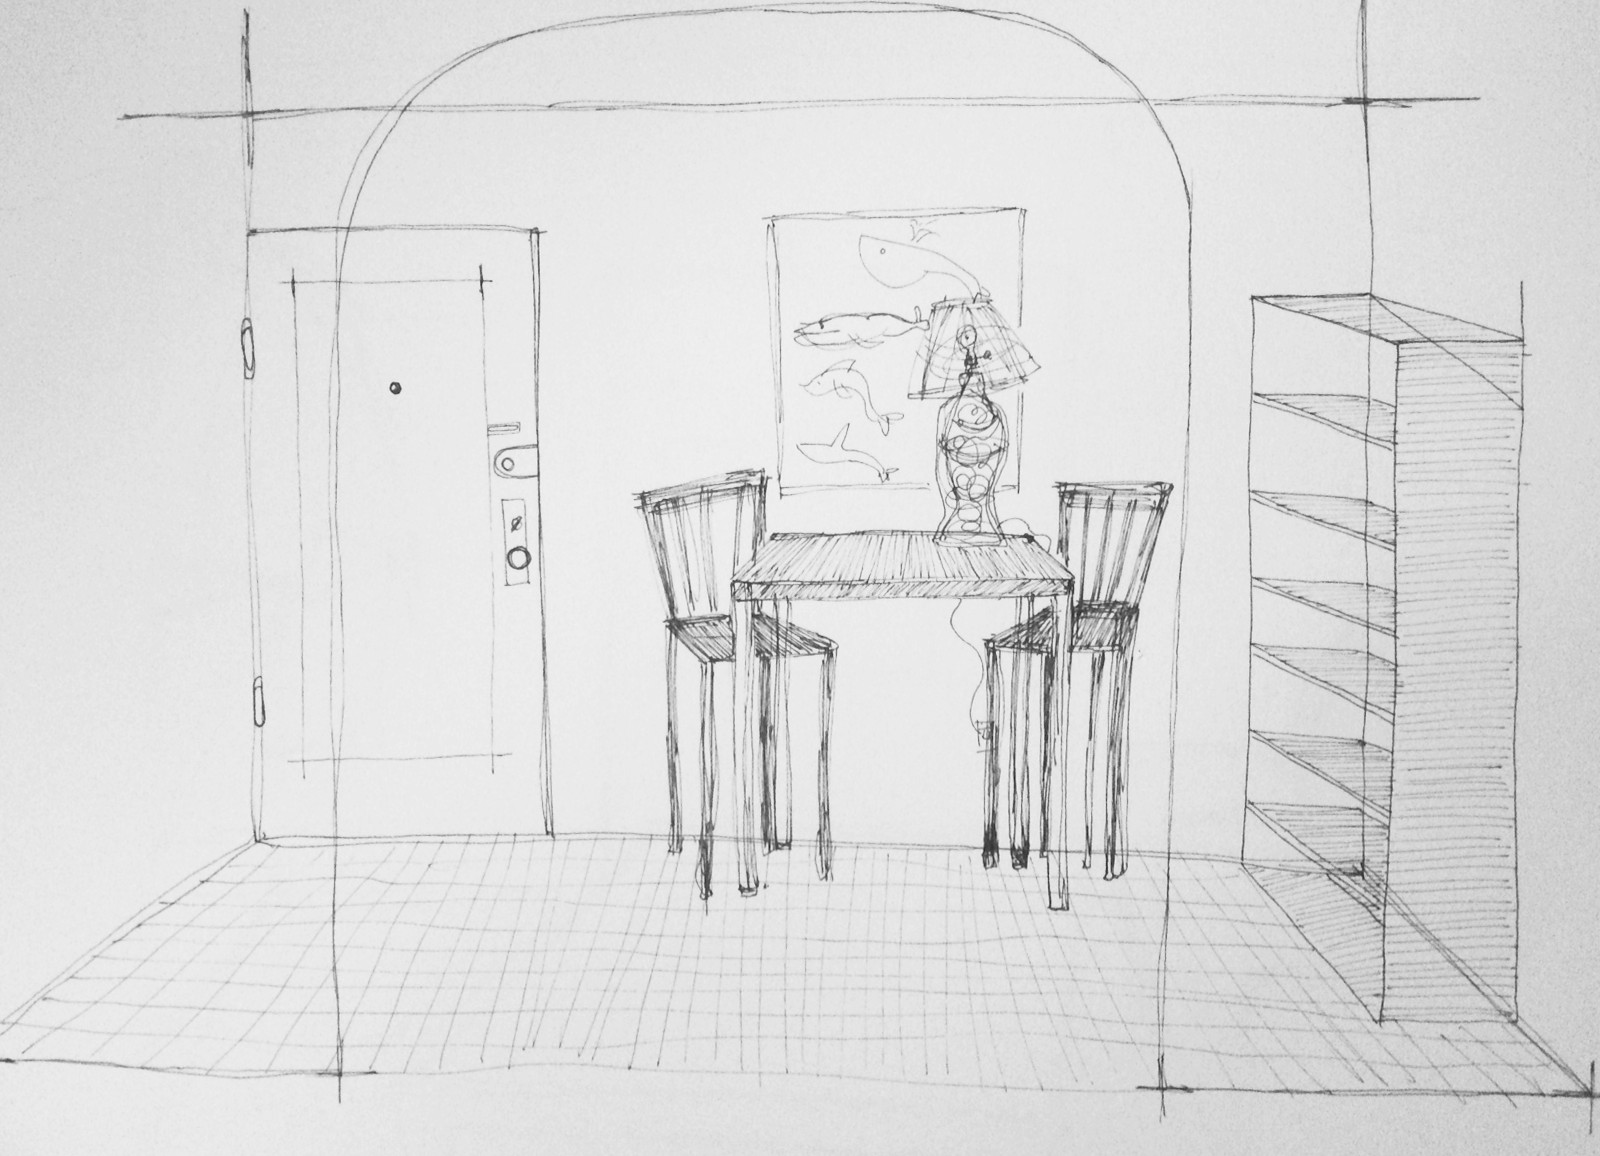 A sketch of the first room I'll be redecorating in my current apartment: the entry and dining area